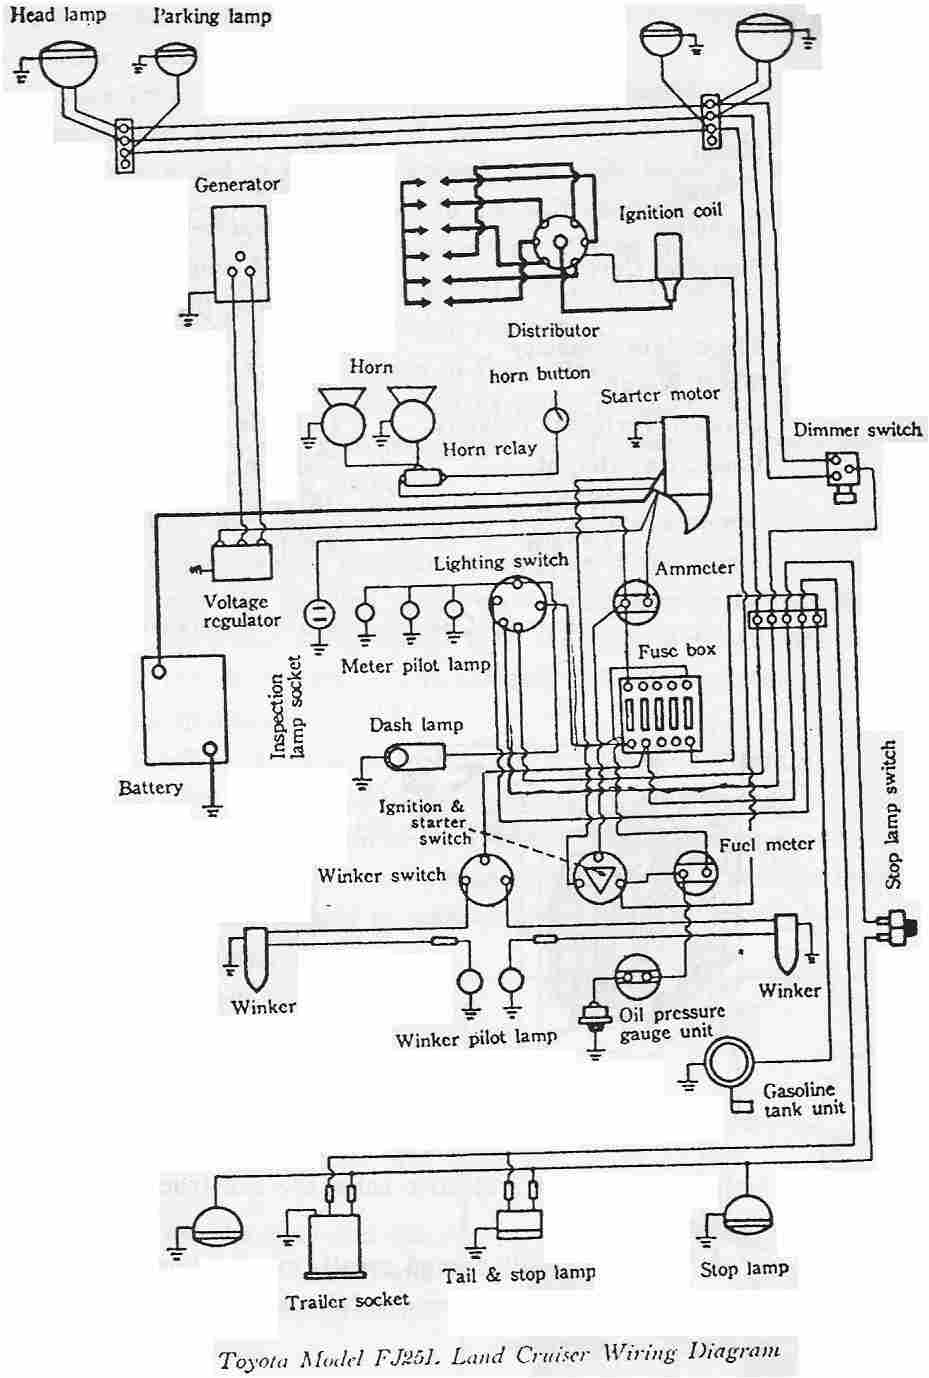 1989 toyota pickup radio wiring diagram 1989 free wiring Toyota Electrical Wiring Diagram toyota ln65 wiring diagram toyota free wiring diagrams, wiring diagram toyota electrical wiring diagram